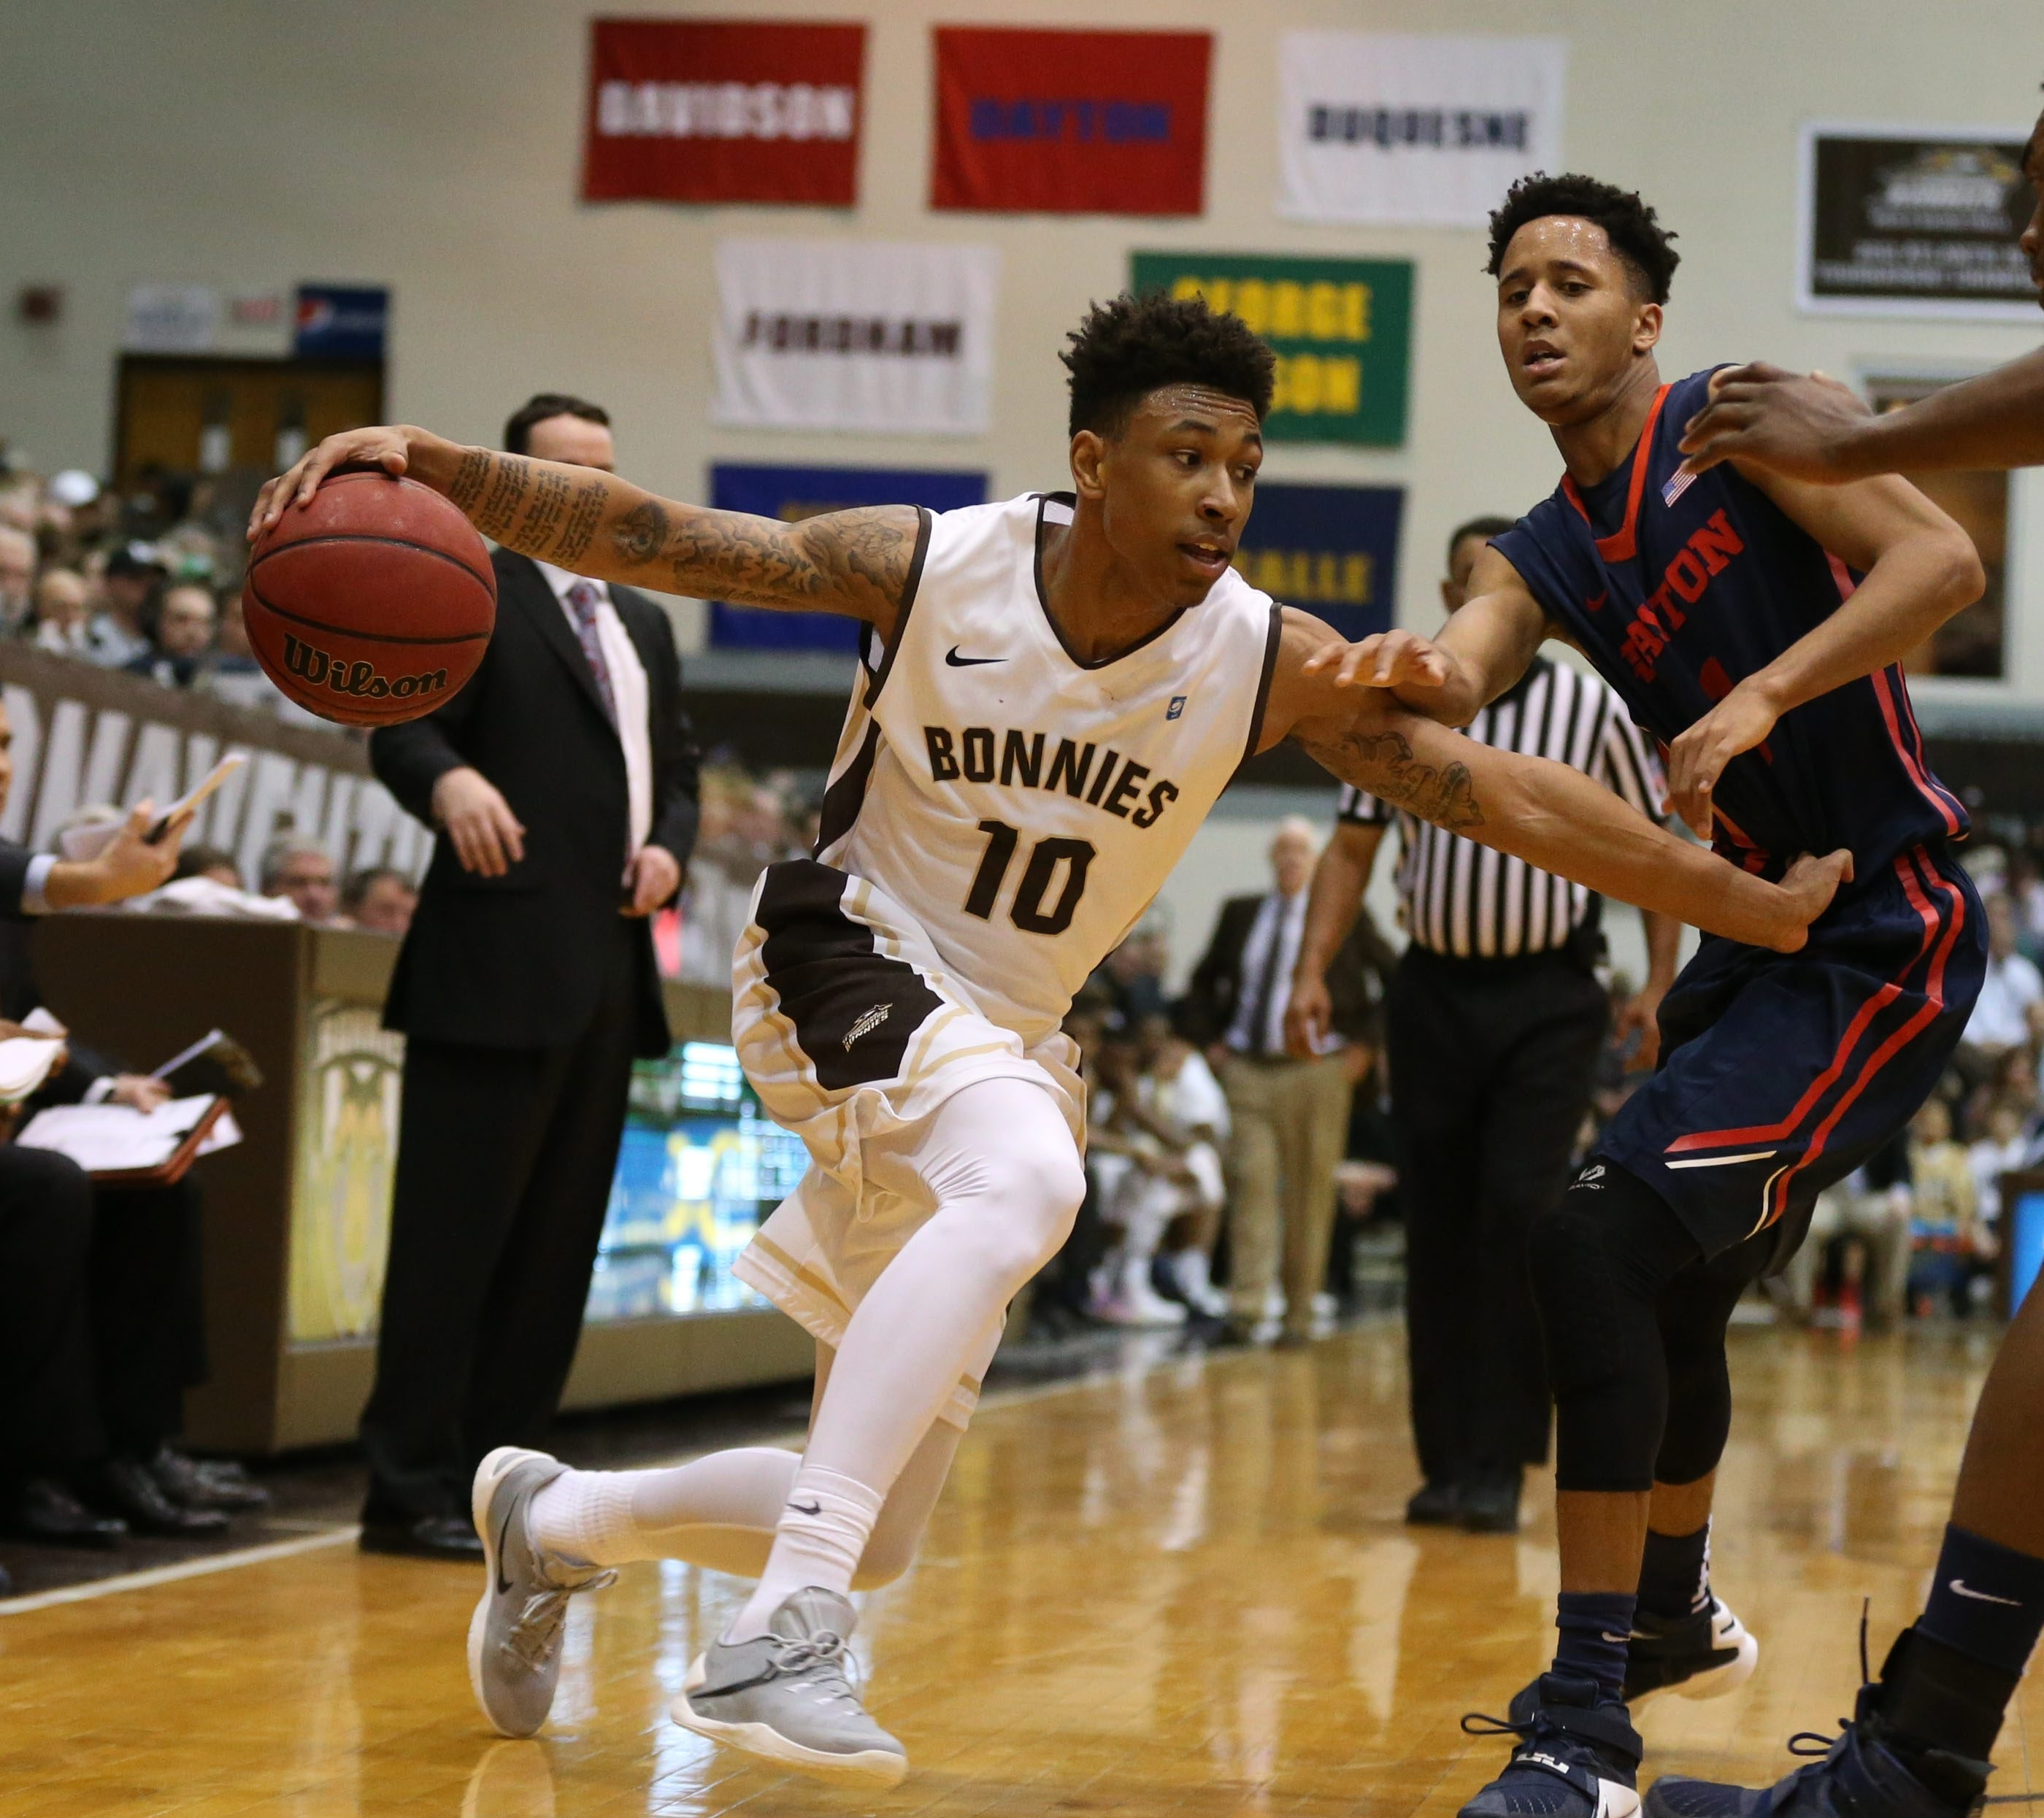 St. Bonaventure guard Jaylen Adams is playing at an all-conference level, says St. Joseph's coach Phil Martelli.